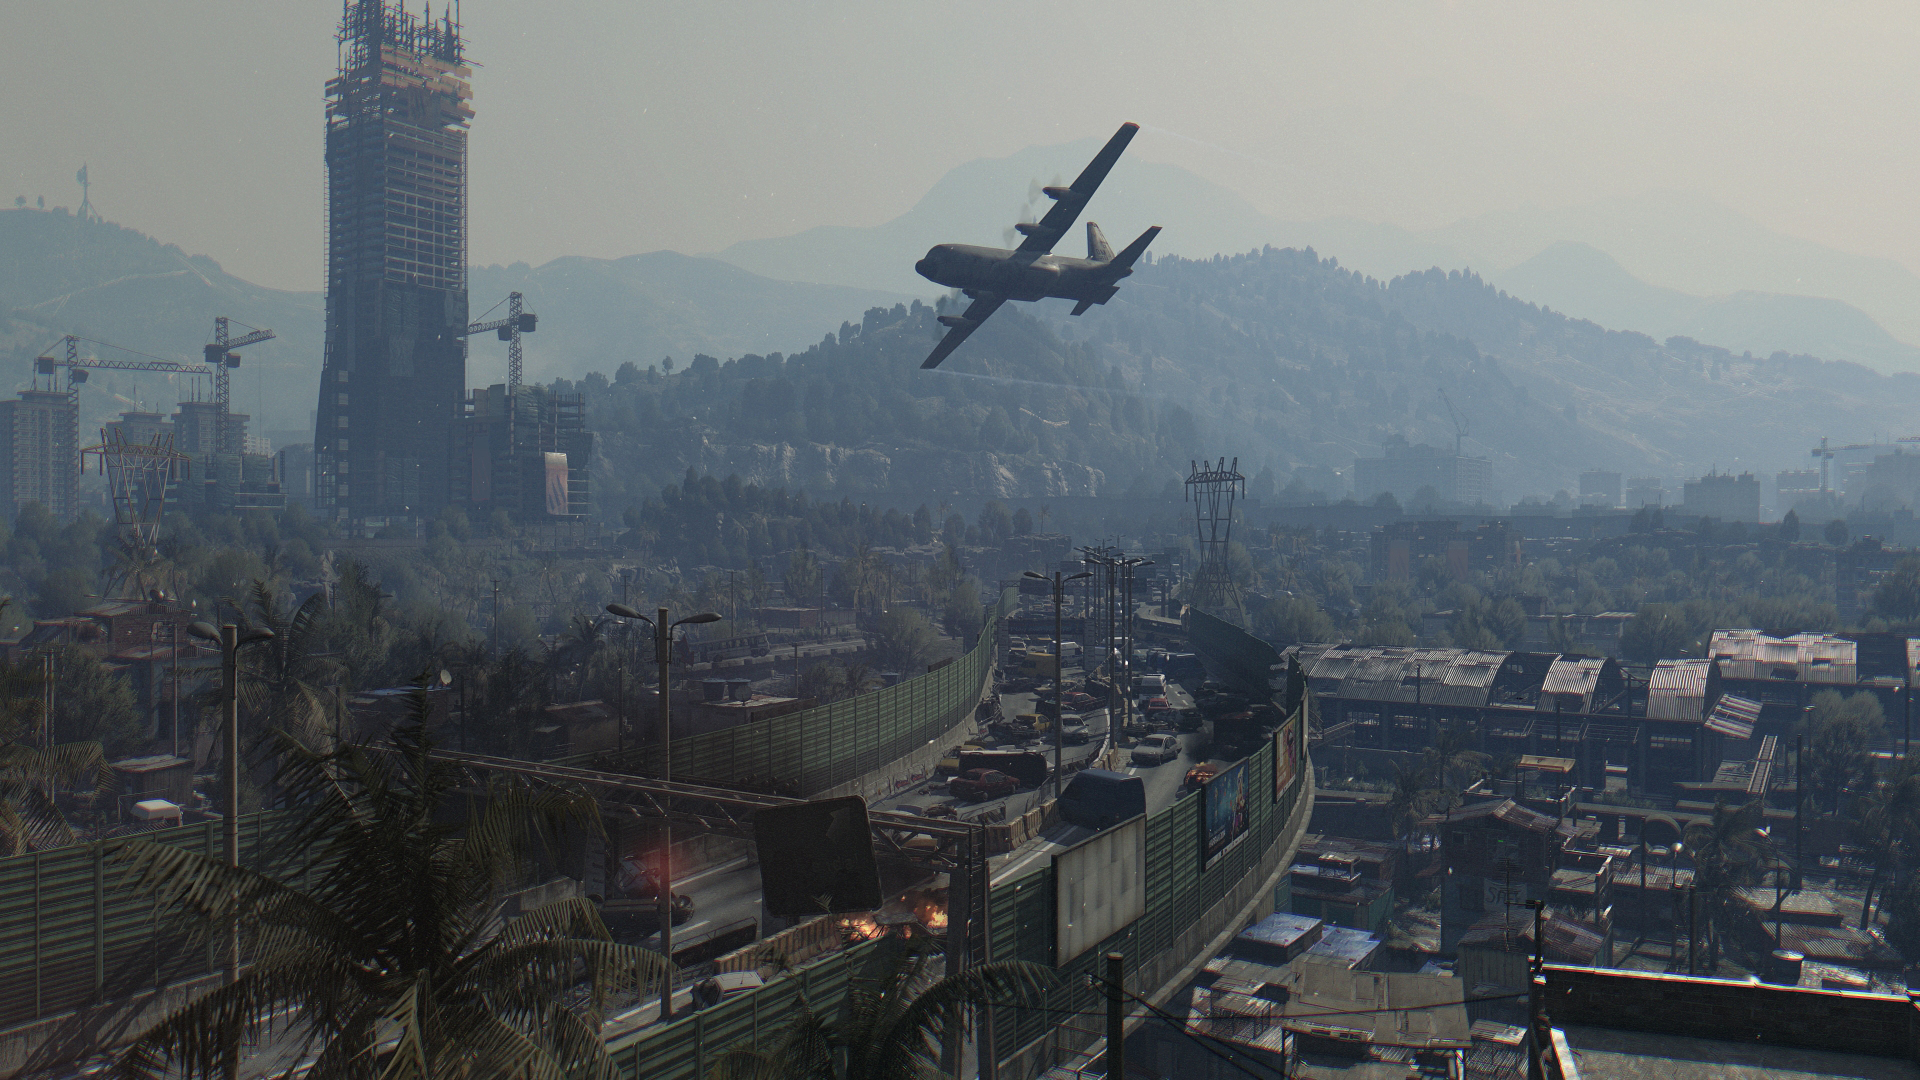 dying light Dying light developer techland has enjoyed huge success with their freerunning zombie game the developer reportedly sold over five million copies of the game, and the company seems very hopeful with the sequel after delivering the hit game last year, techland is aiming to create dying light 2.